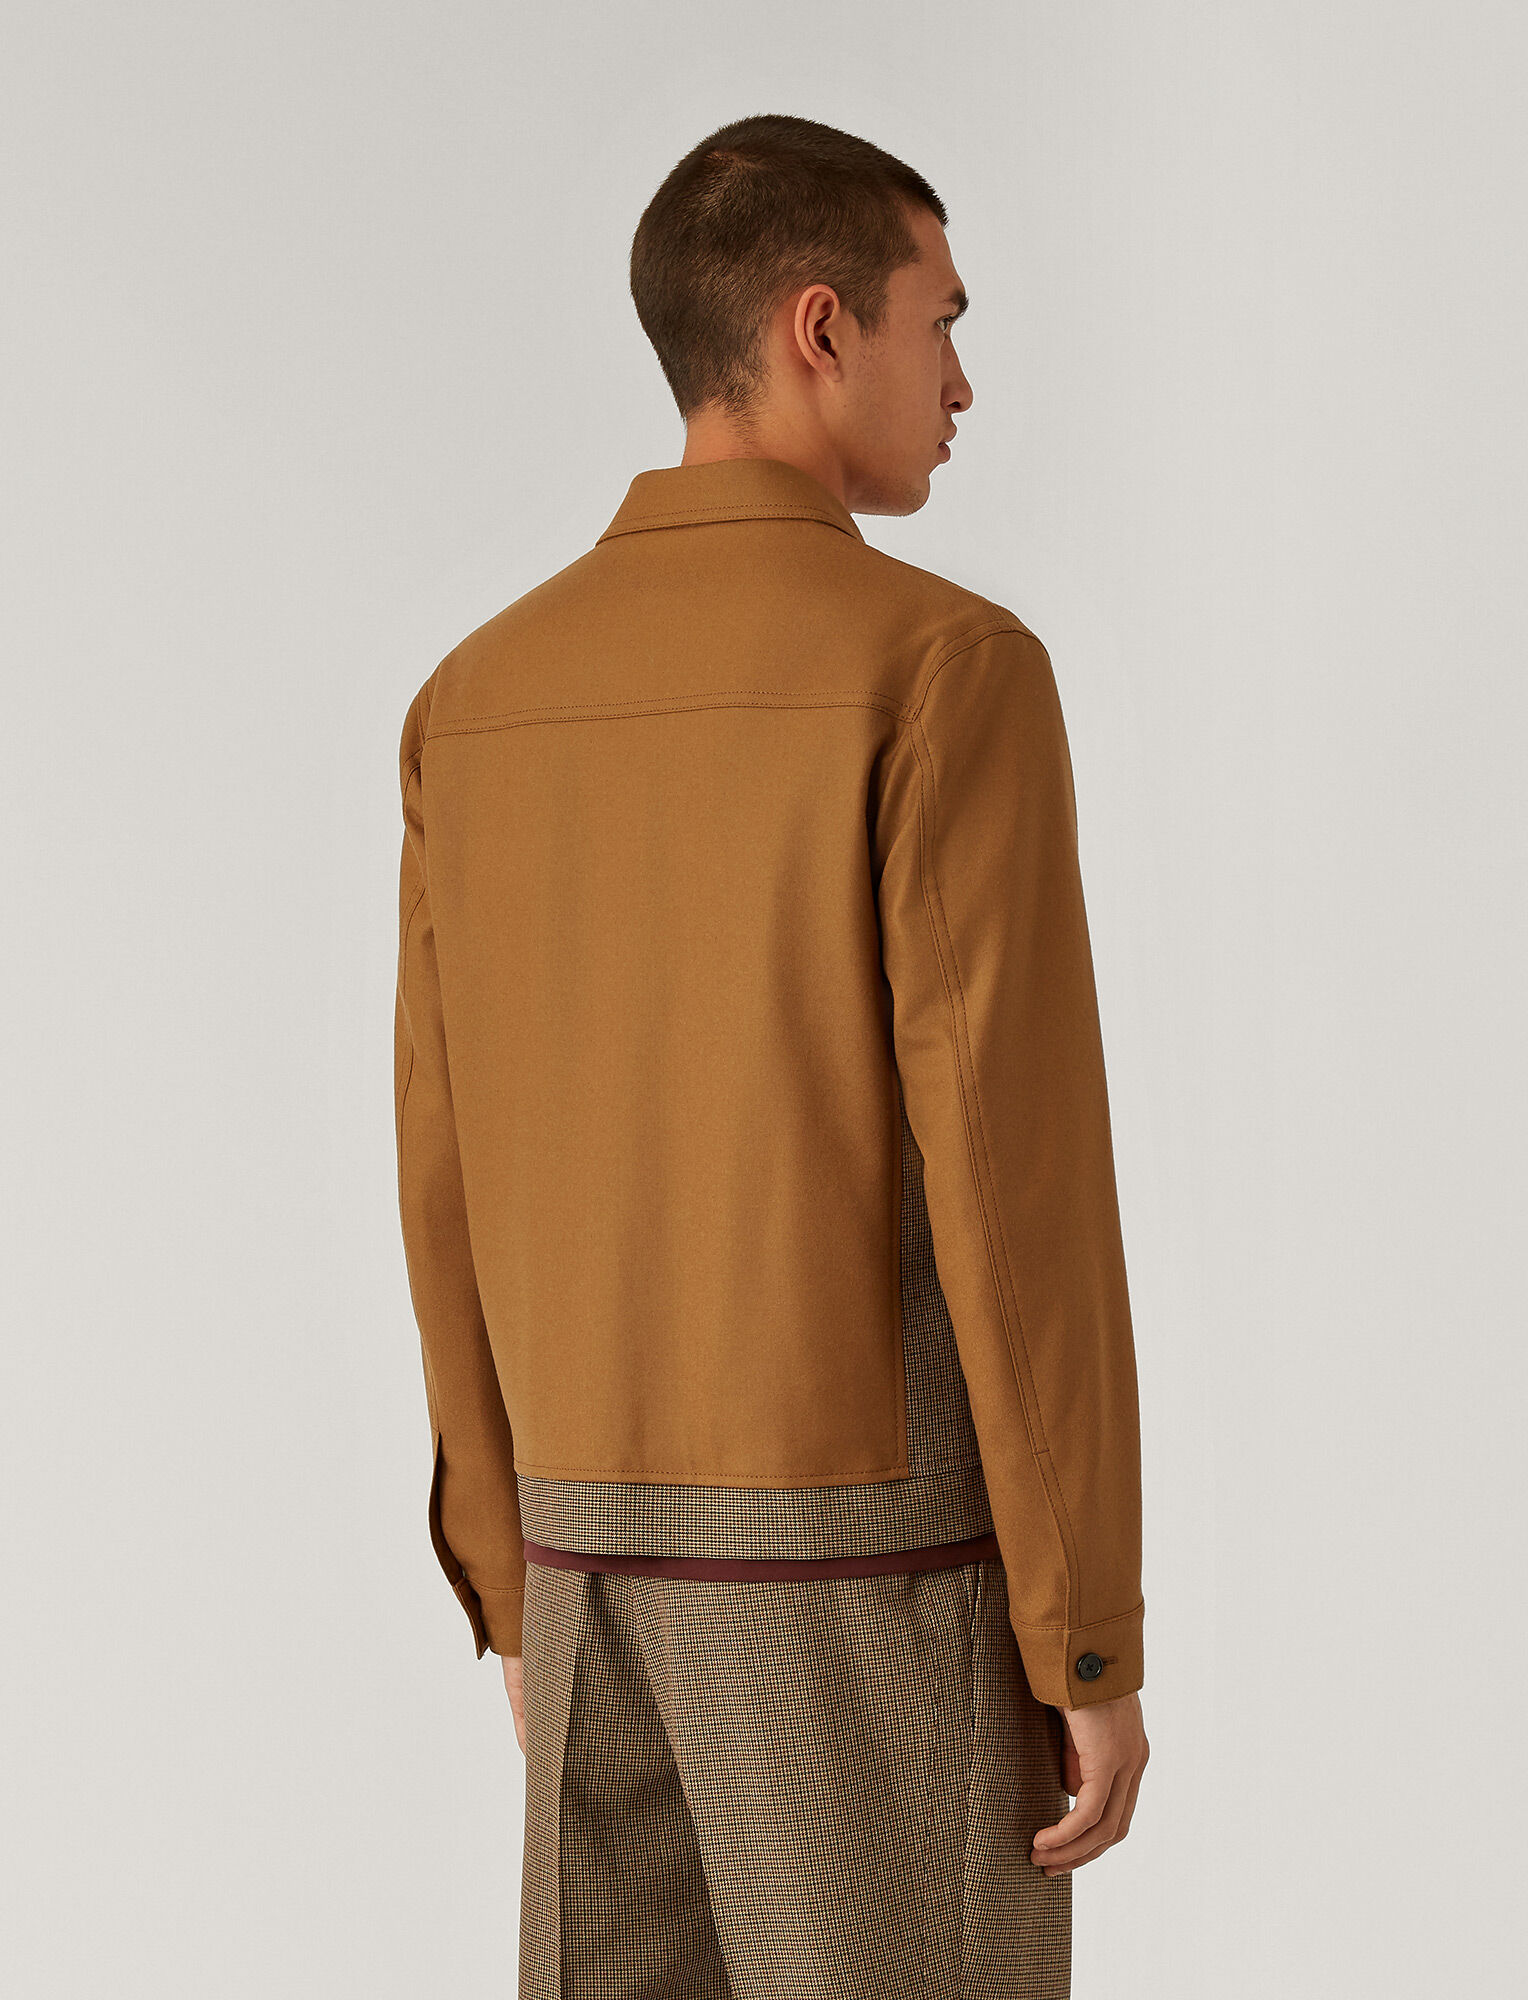 Joseph, Covert Cloth Combi Jacket, in Bronze